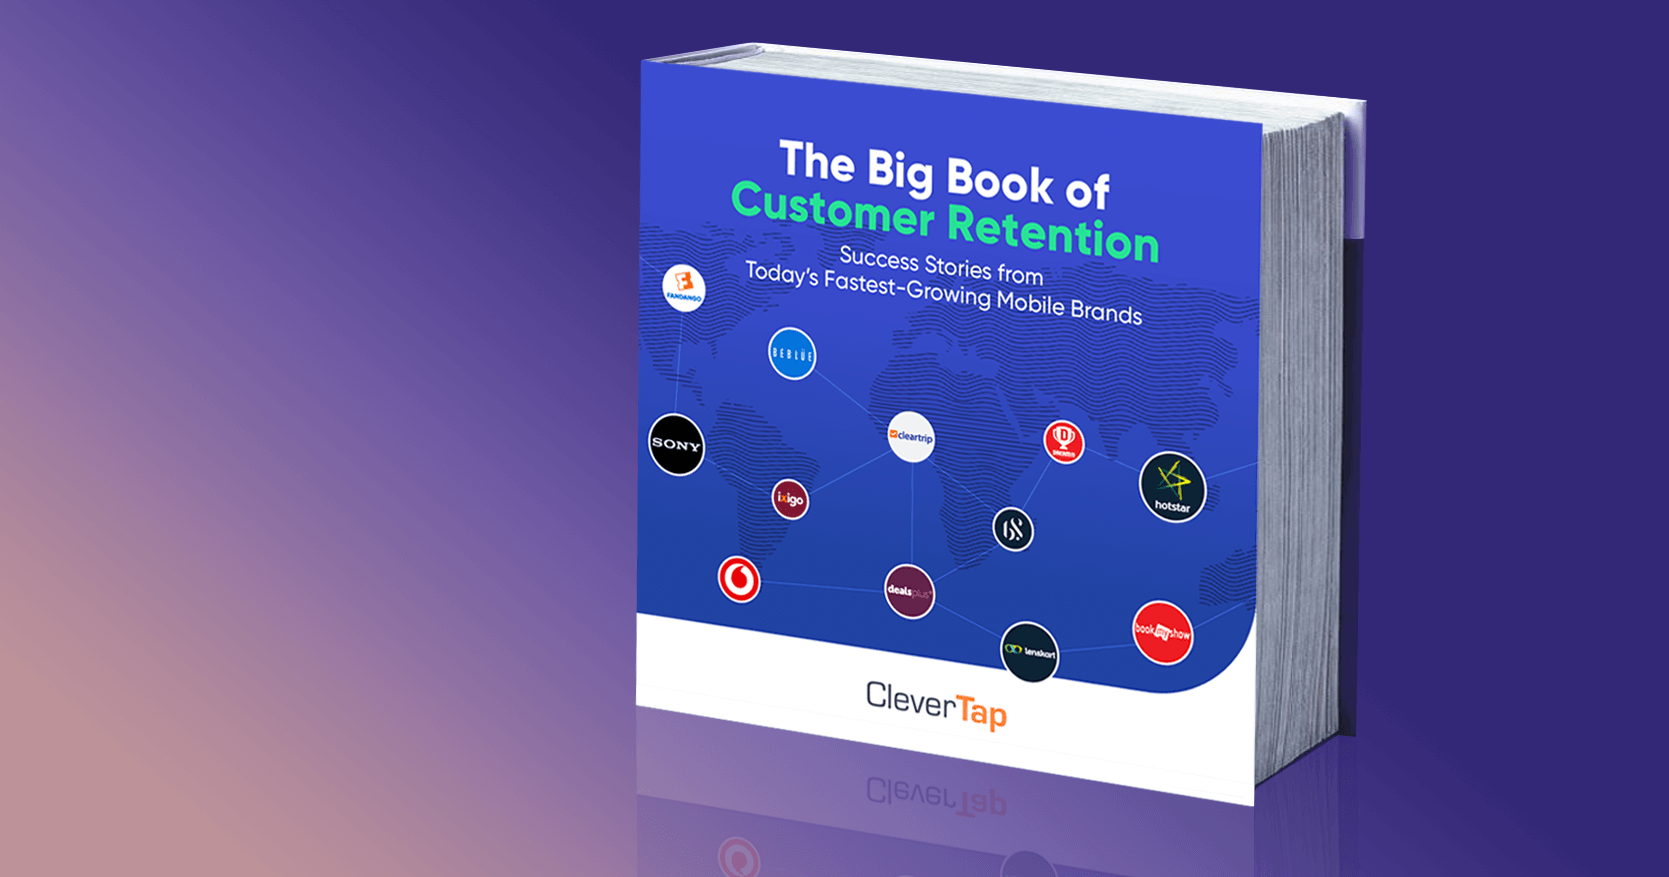 The Big Book of Customer Retention